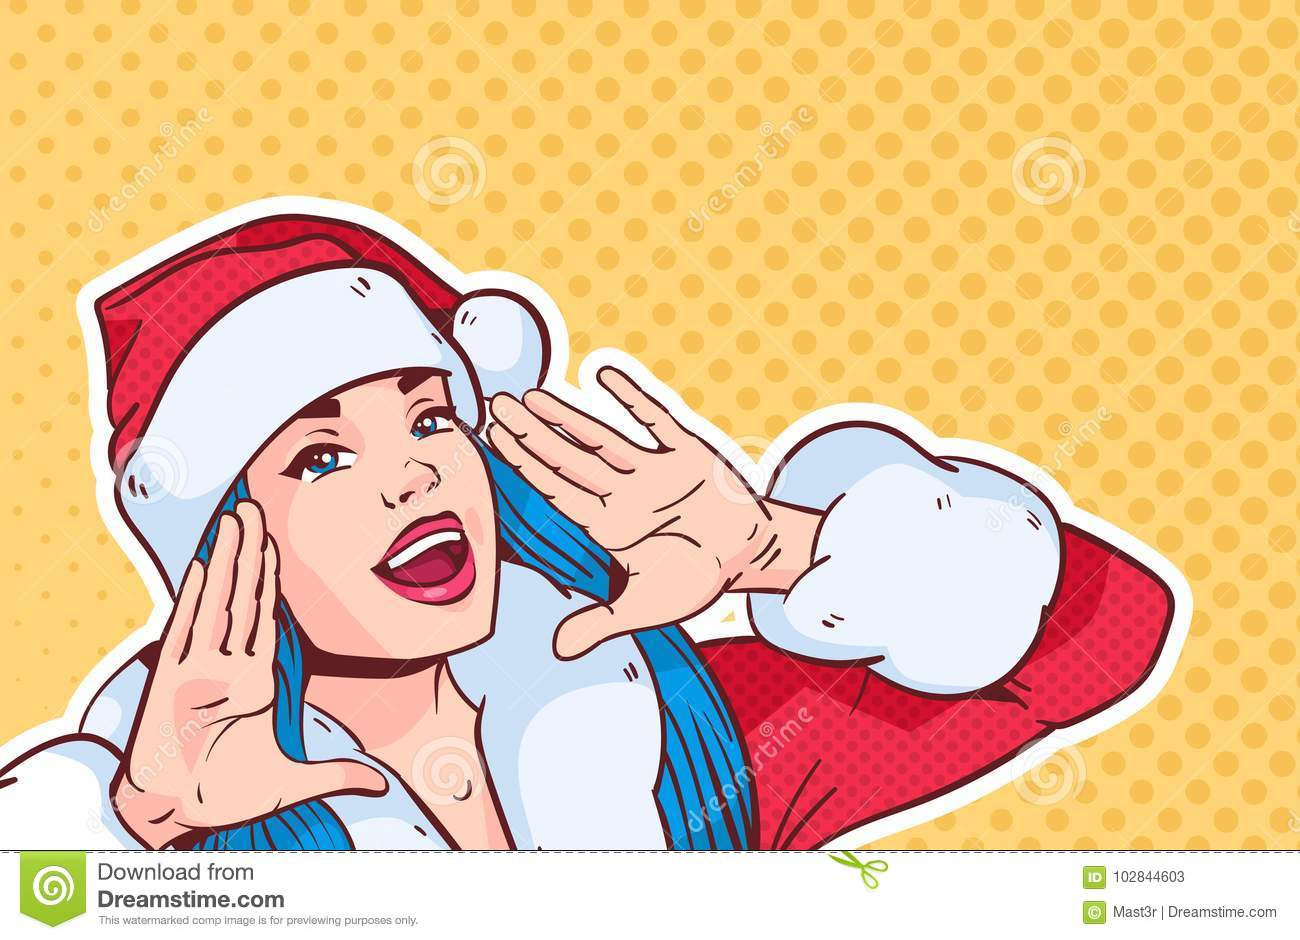 Beautiful Girl Wear Santa Costume Screaming, Merry Christmas And Happy New Year Concept Retro Pop Art Style